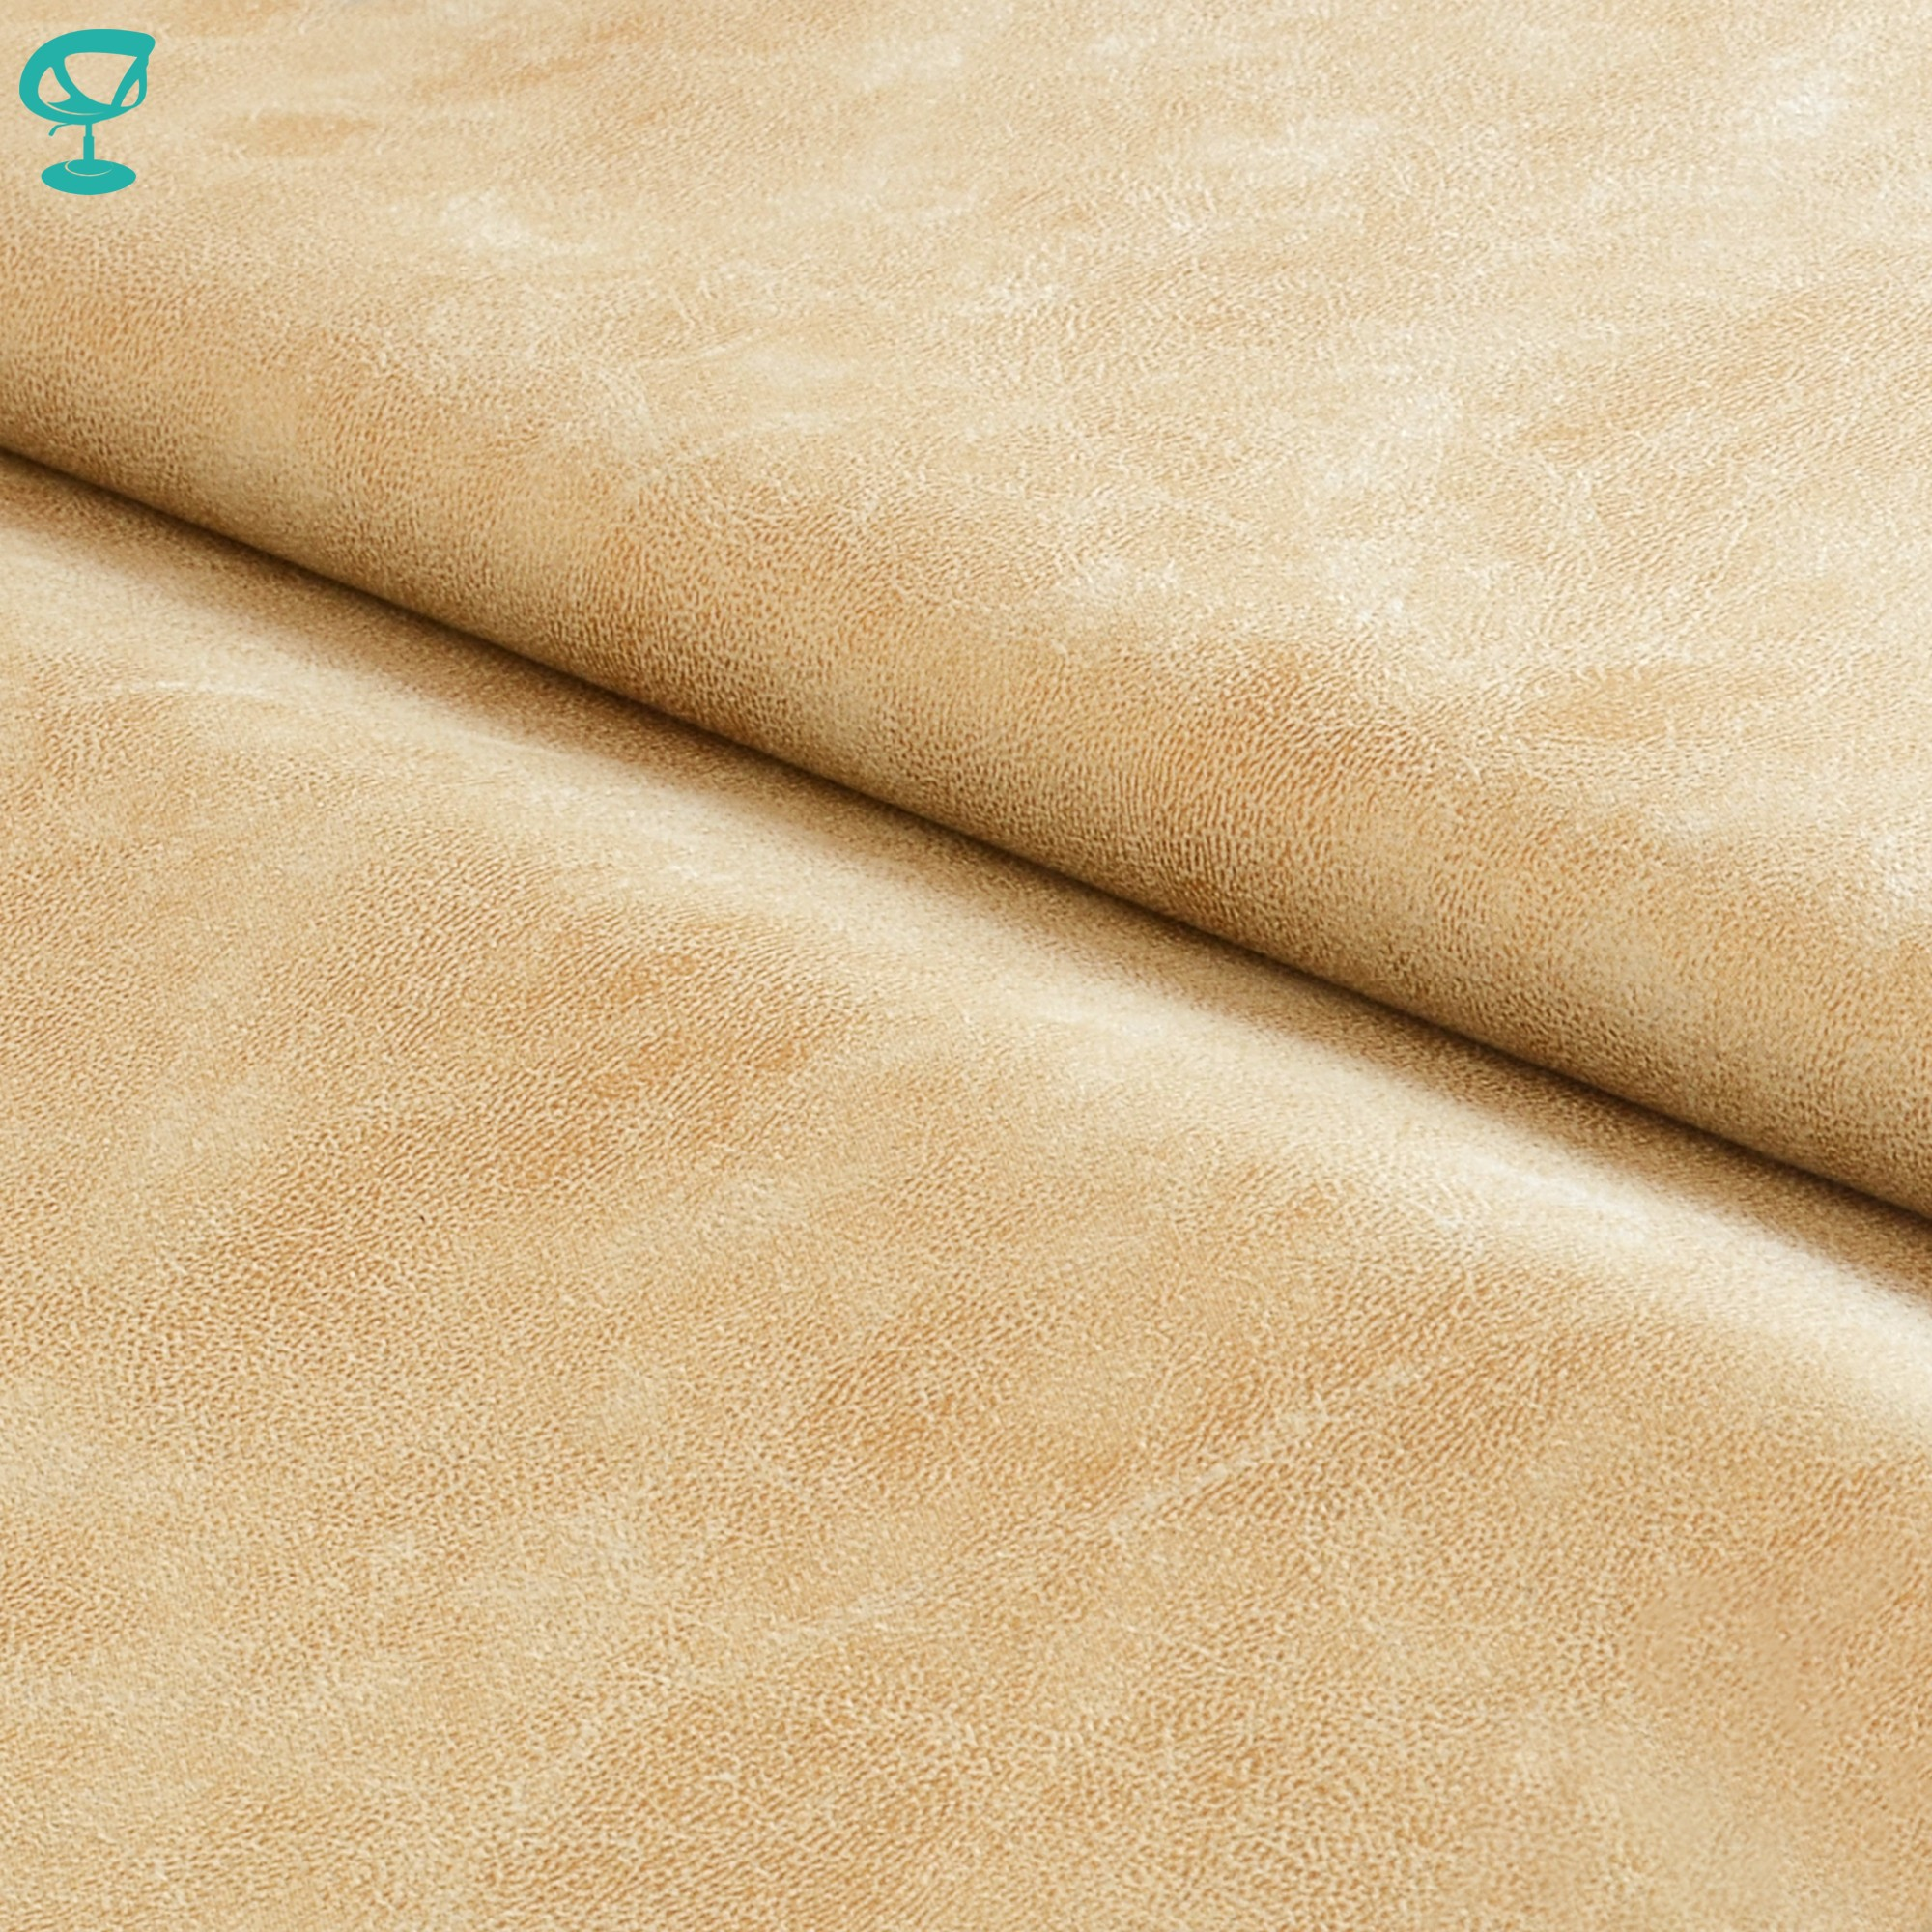 95645 Barneo PK970-1 Fabric Furniture Nubuck Polyester обивочный Material For мебельного Production Necking Chairs Sofas